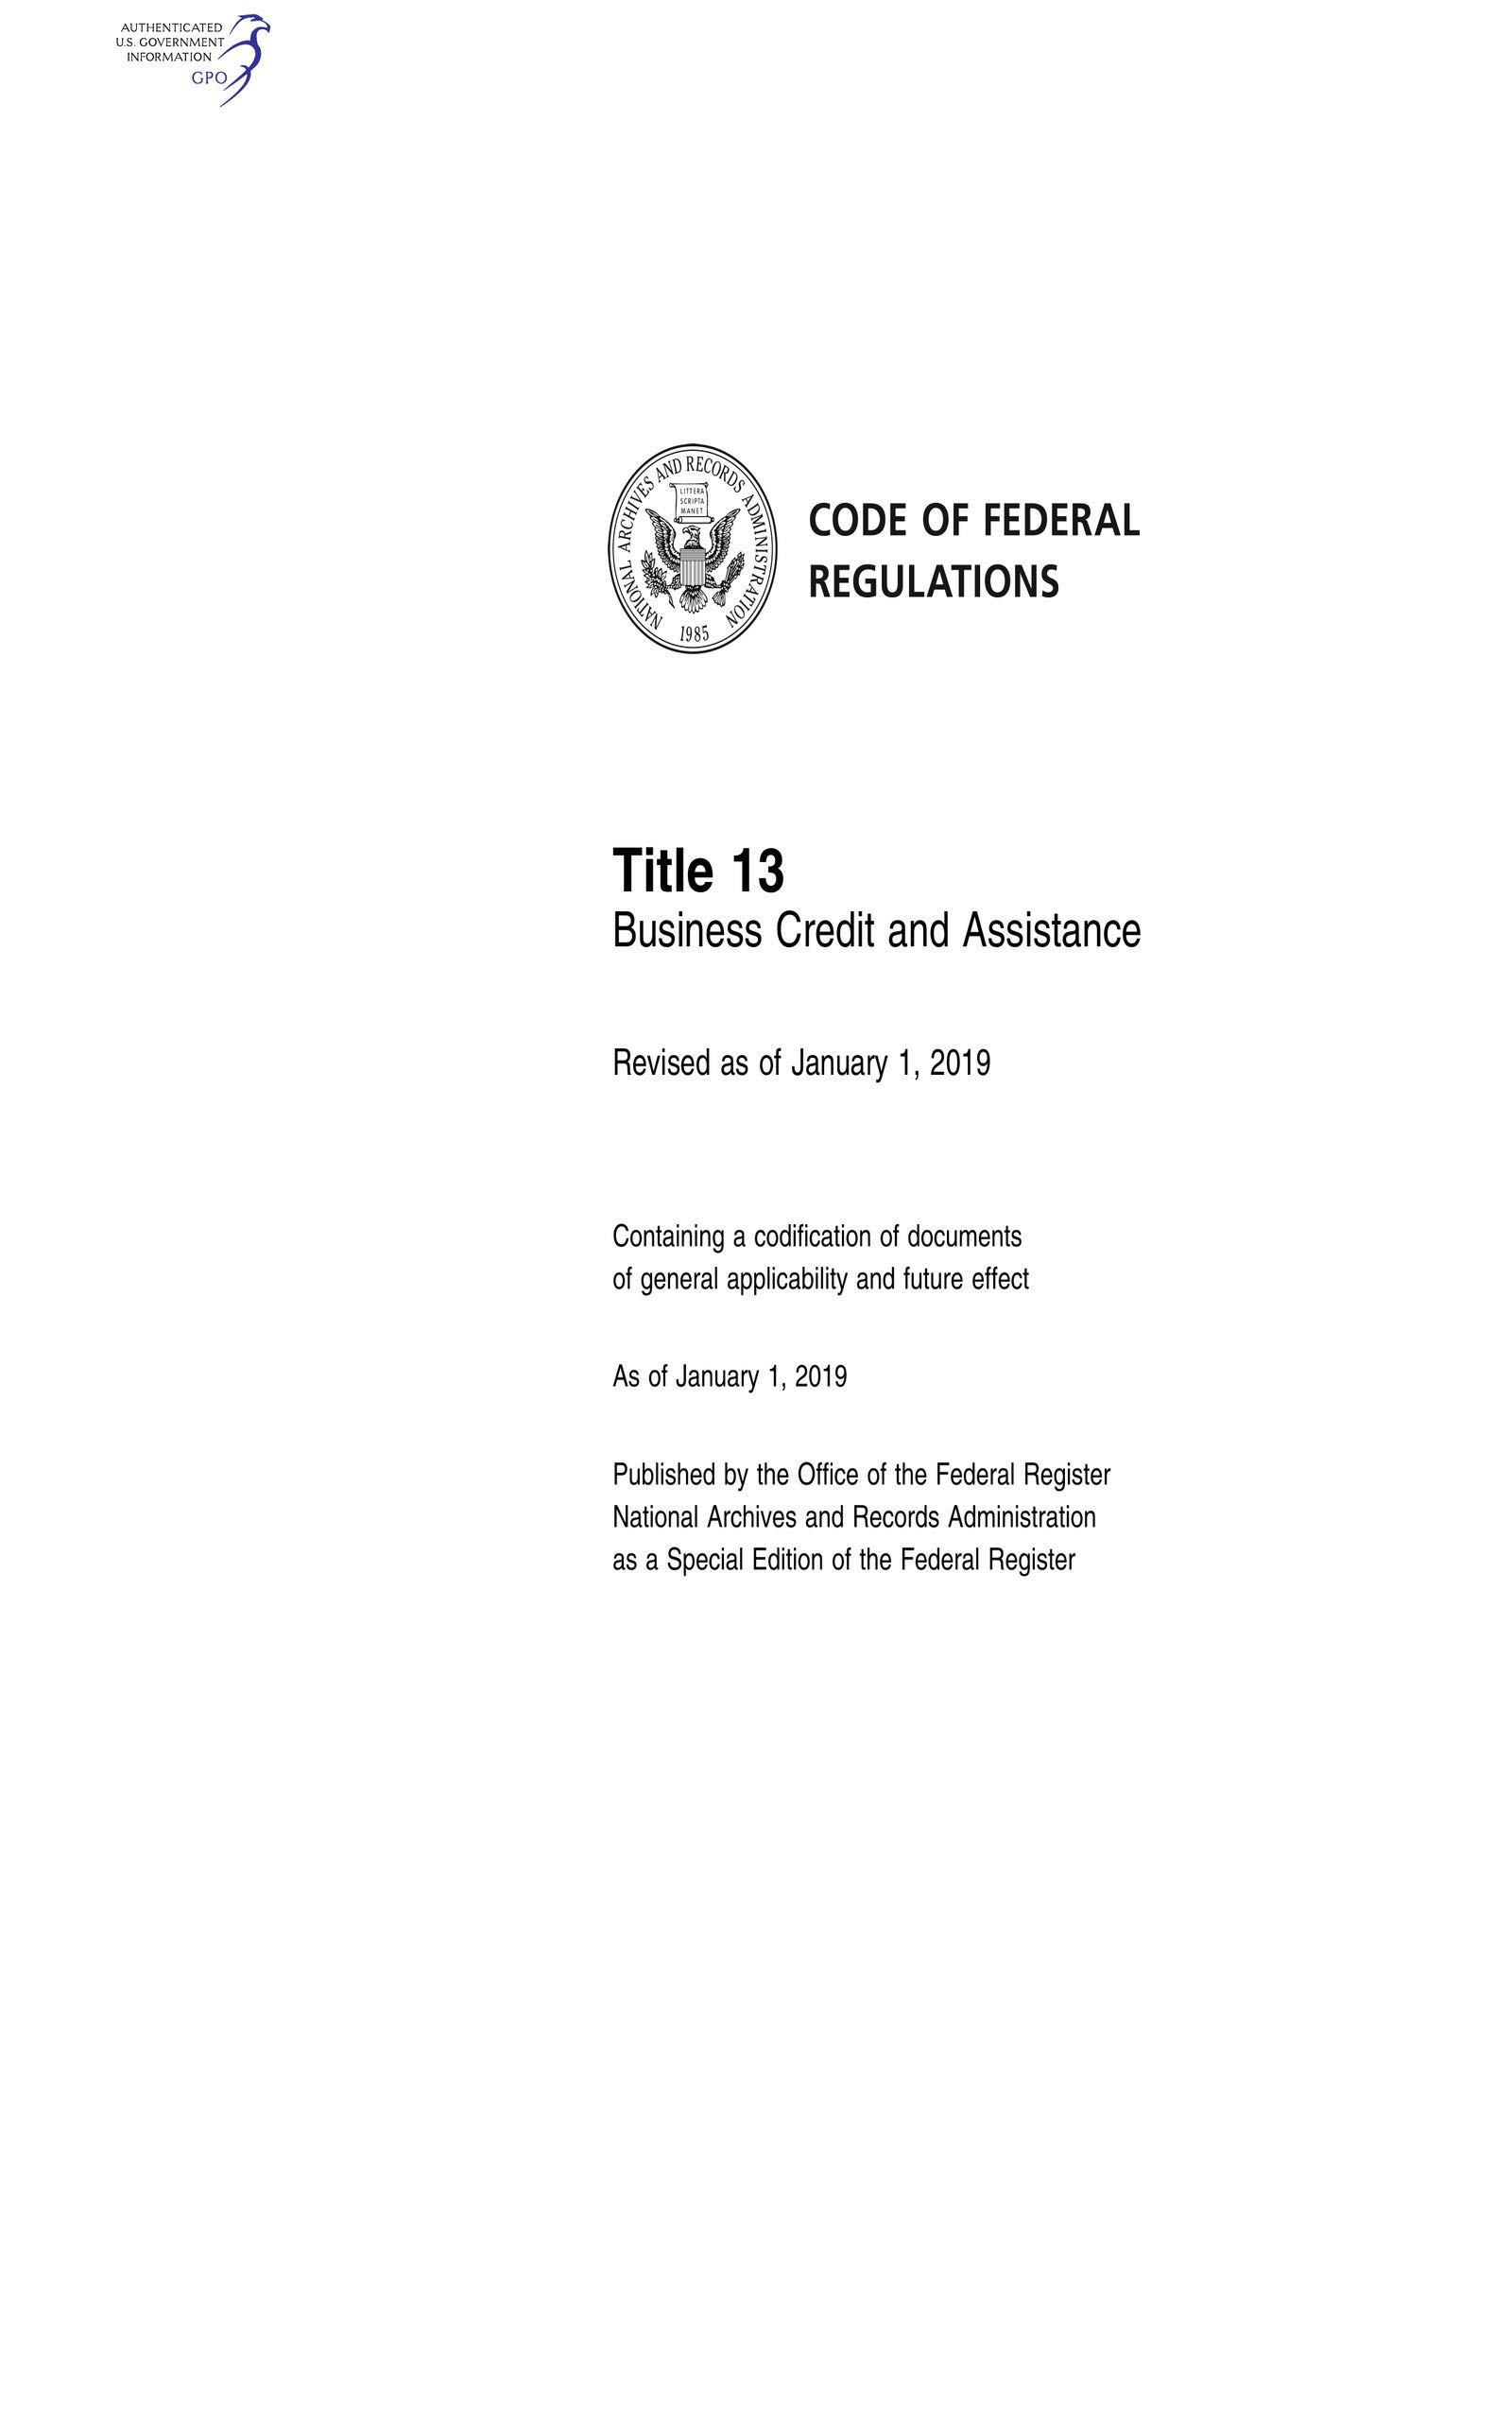 Code of Federal Regulations Title 13, Business Credit and Assistance, 2019